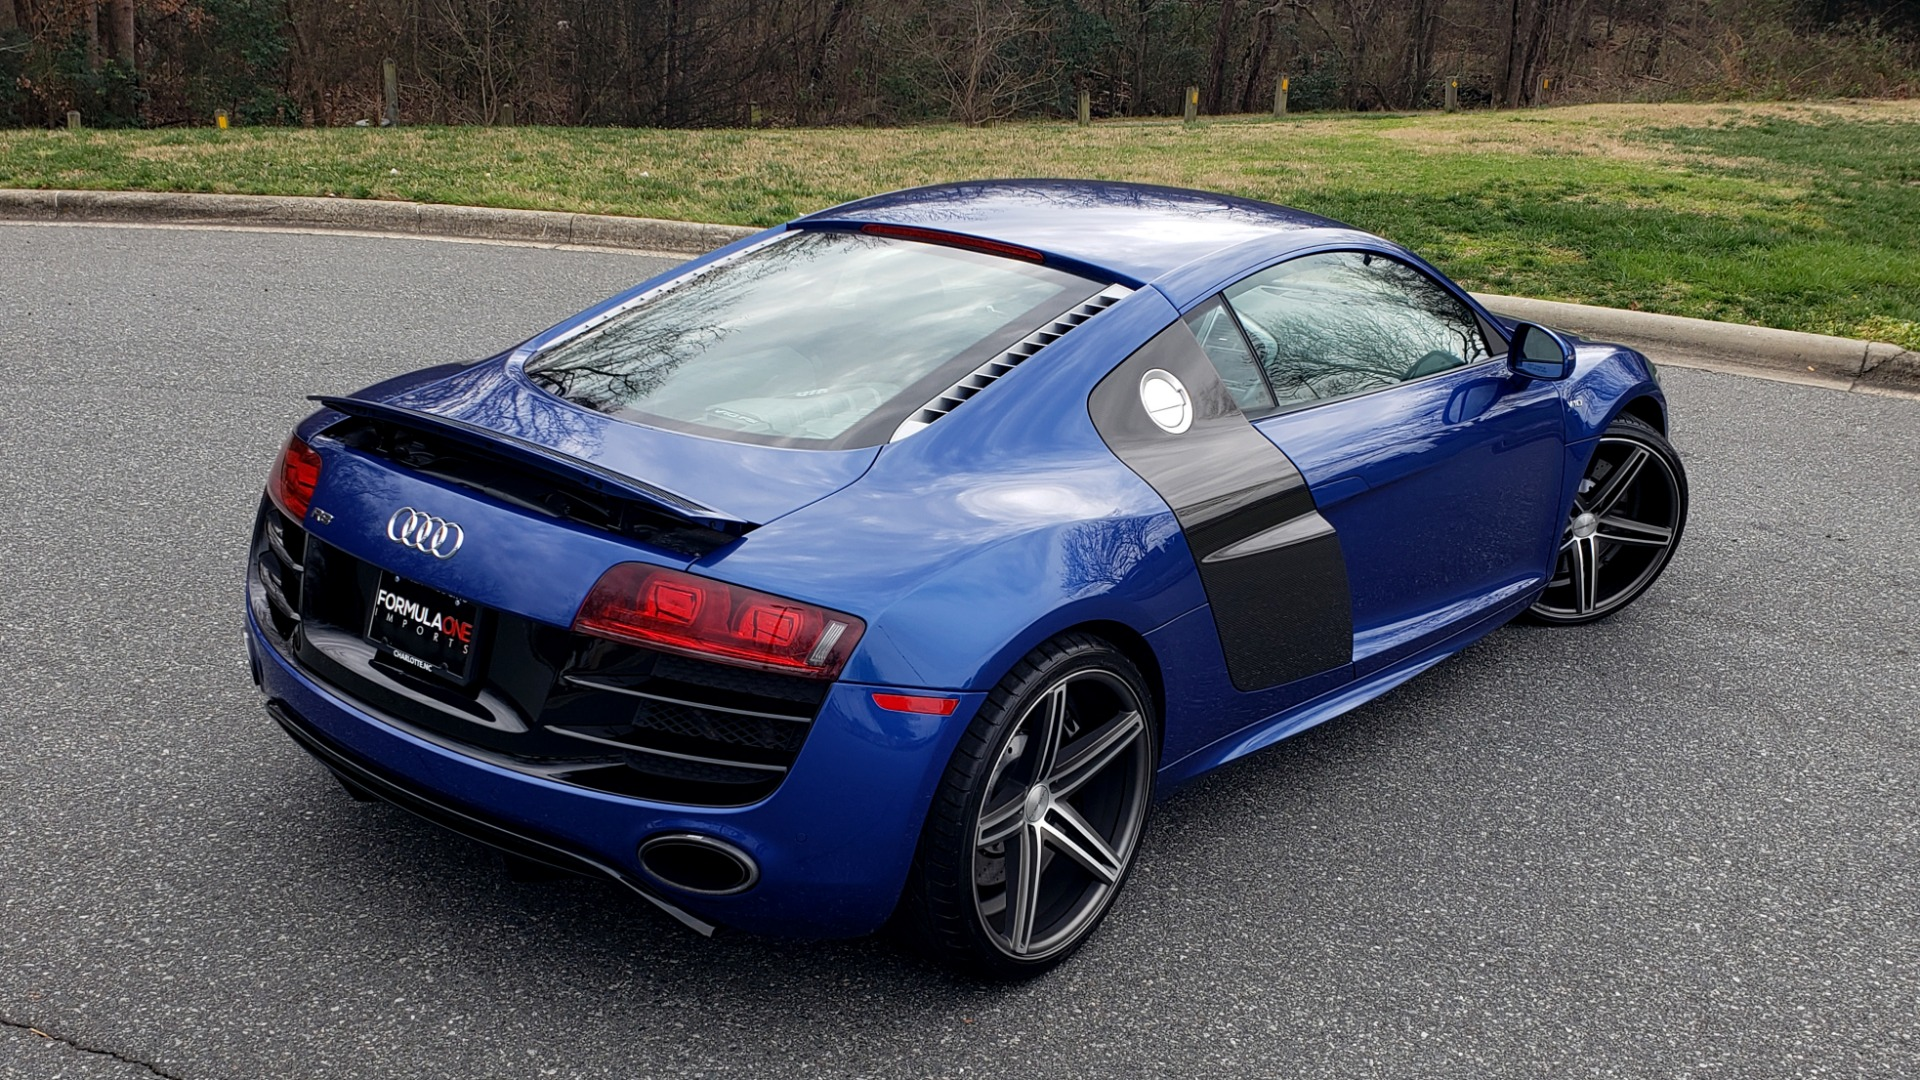 Used 2010 Audi R8 5.2L V10 / AWD / COUPE / NAV / 6-SPD AUTO / CUSTOM WHEELS for sale Sold at Formula Imports in Charlotte NC 28227 9